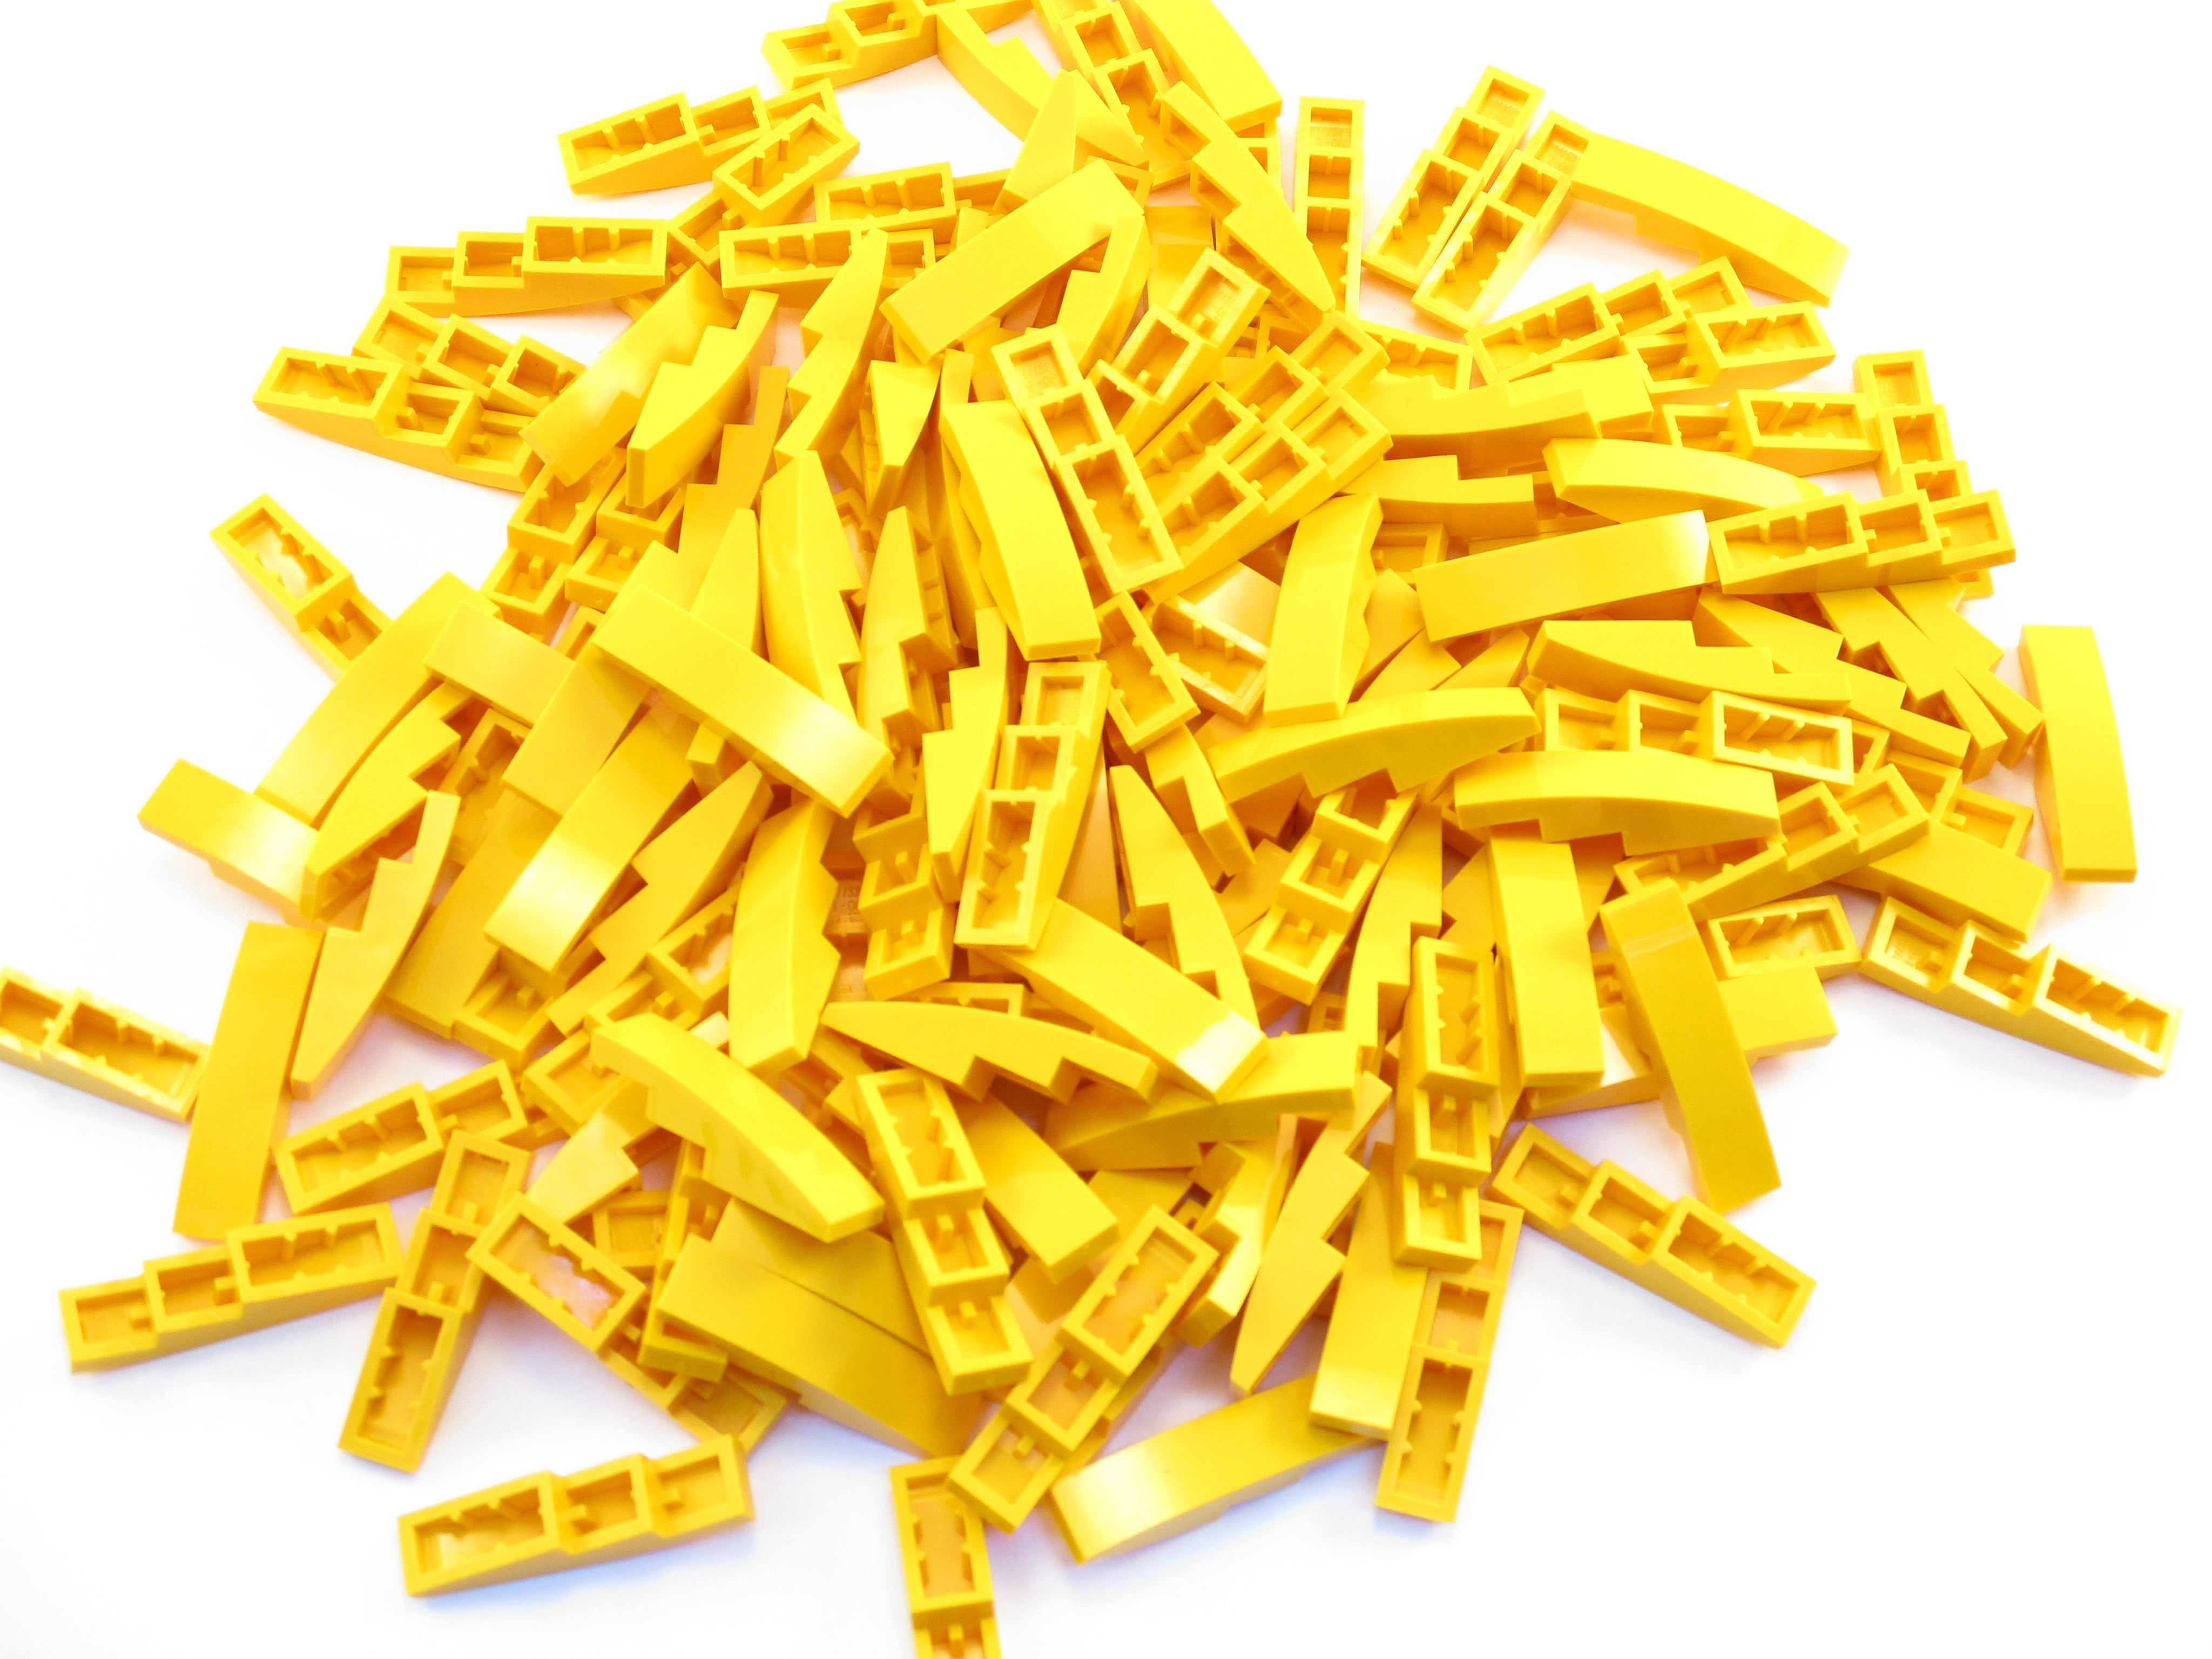 LEGO Bright Light Orange Slope Curved 4x1 No Studs Lot of 100 Parts Pieces 61678